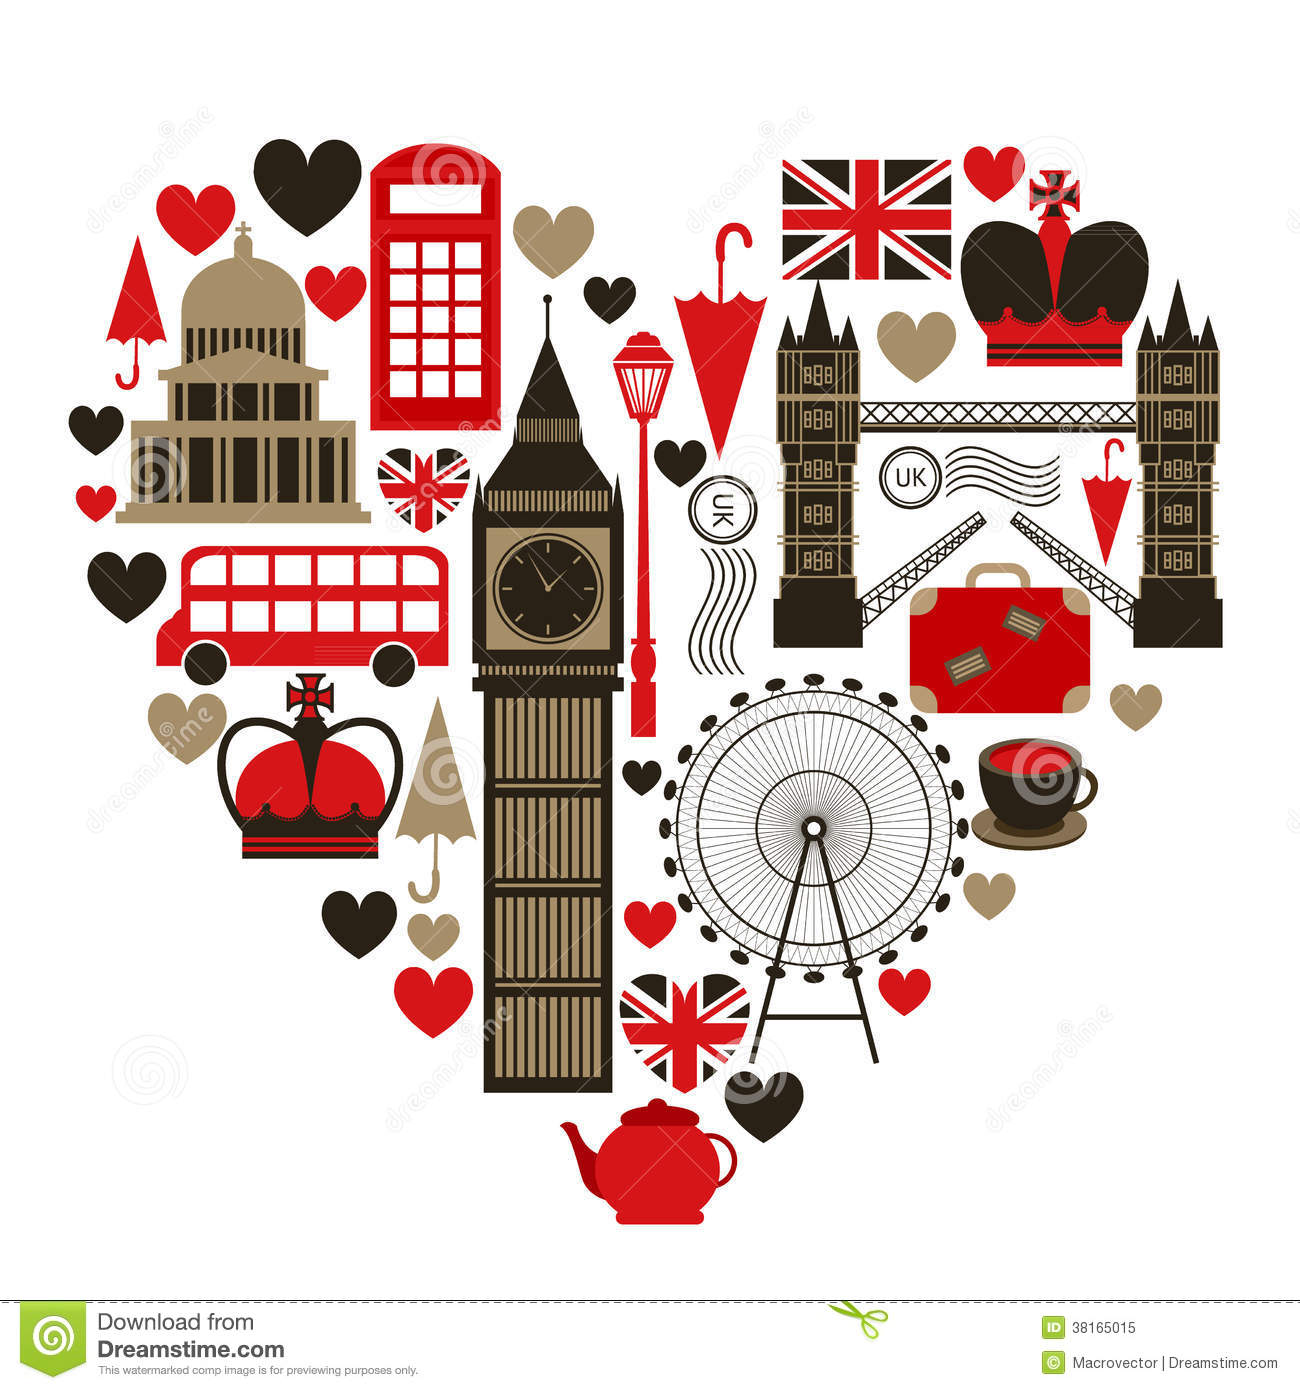 Love London heart symbol with icons set isolated vector illustration.